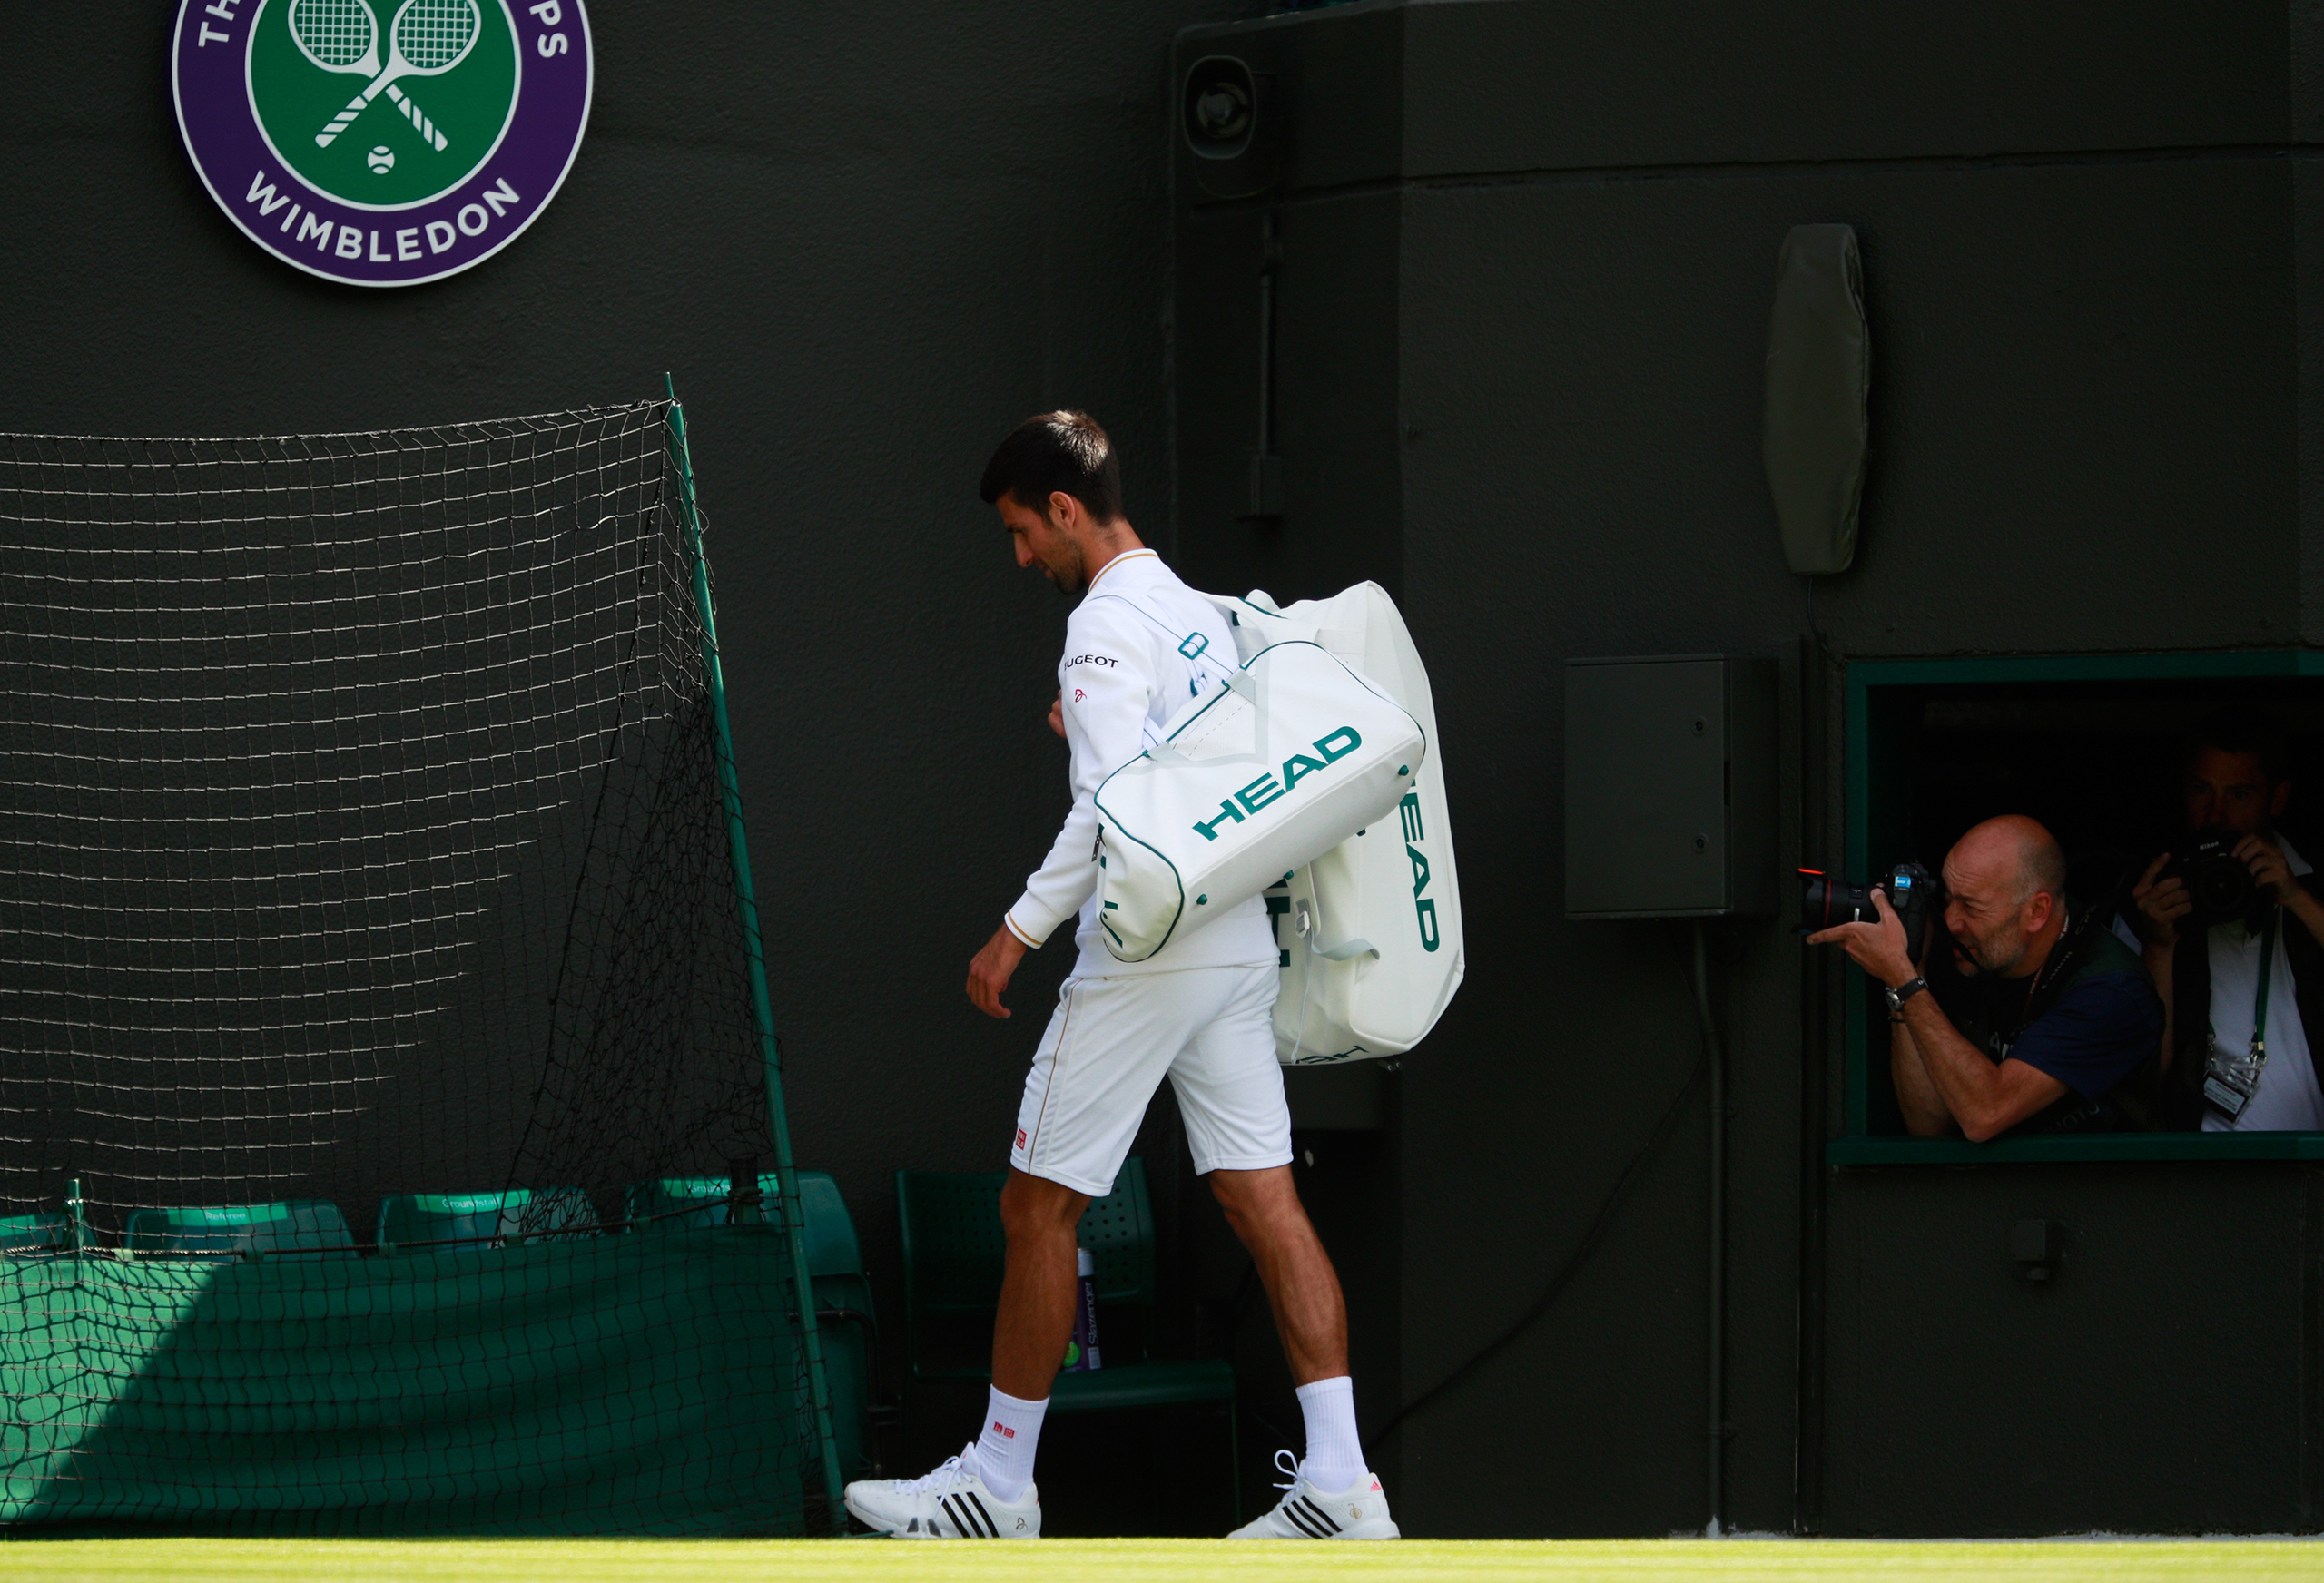 Novak Djokovic of Serbia walks off the court following defeat in the Men's Singles third round match against Sam Querrey of the United States on day six of the Wimbledon Lawn Tennis Championships in London on July 2, 2016.